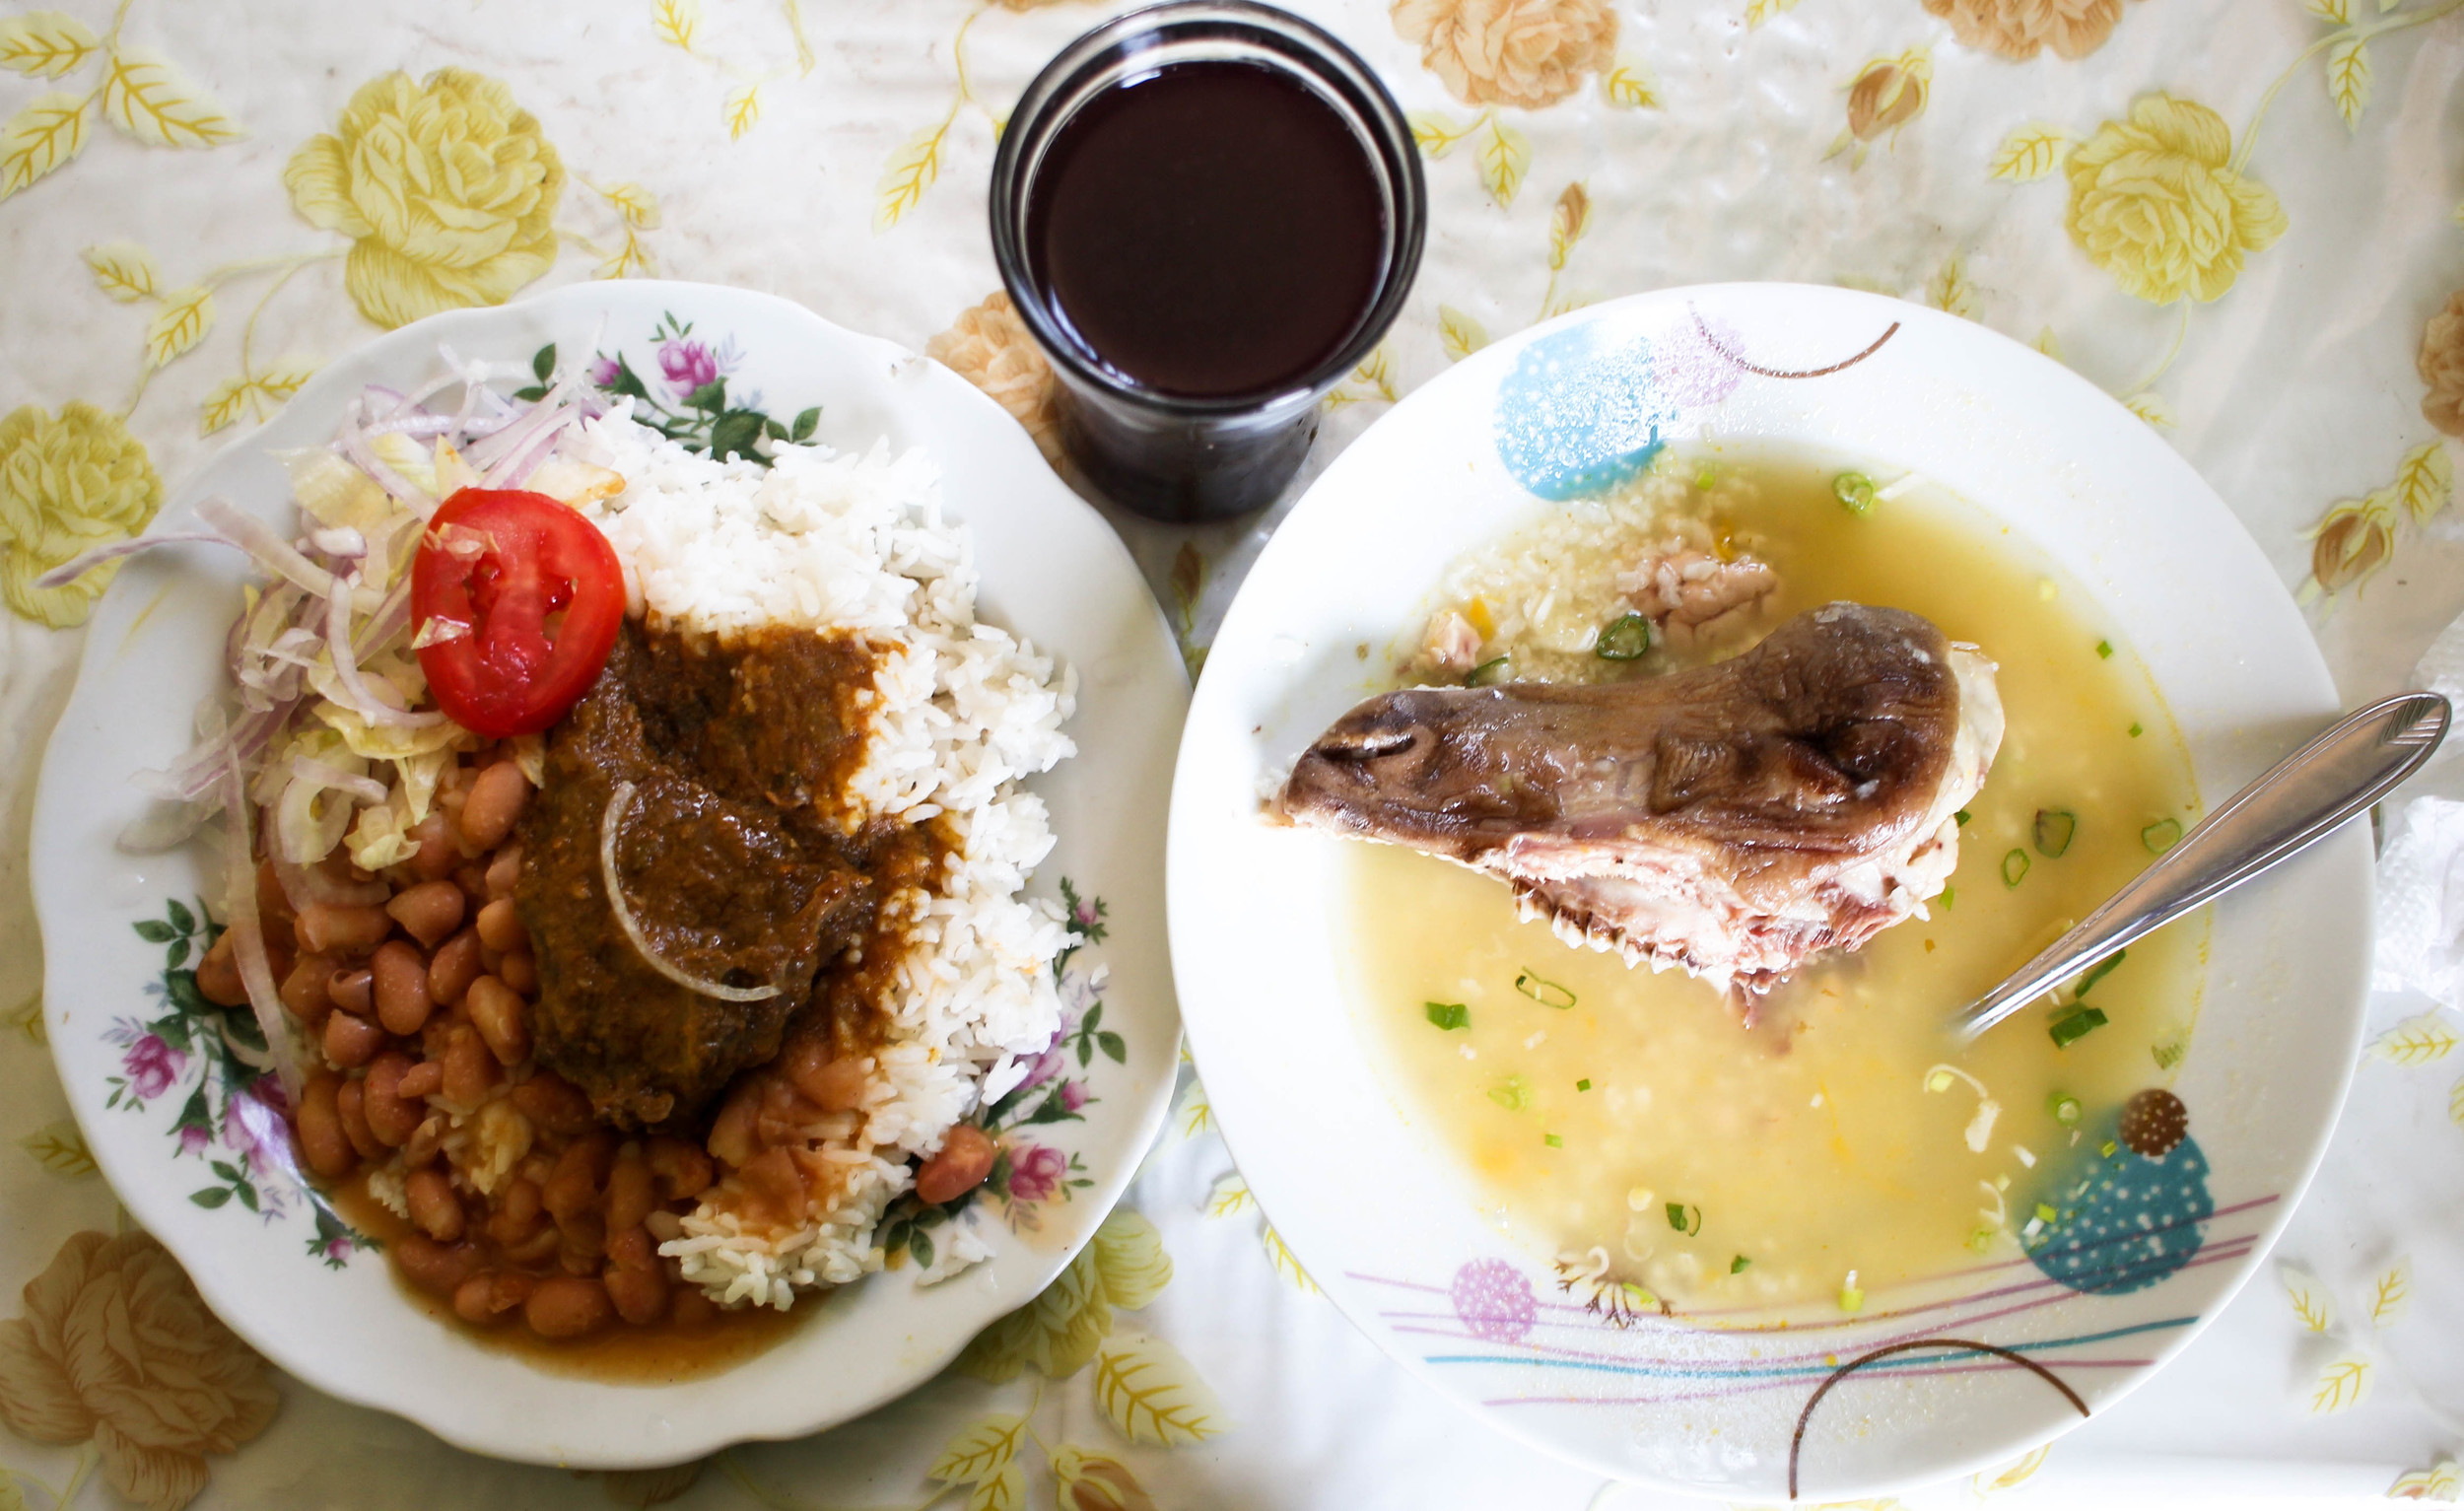 I eat what I am served and this day I was served cabrito (stewed little goat)and caldo de cabeza (soup of head) with a goat head in it!